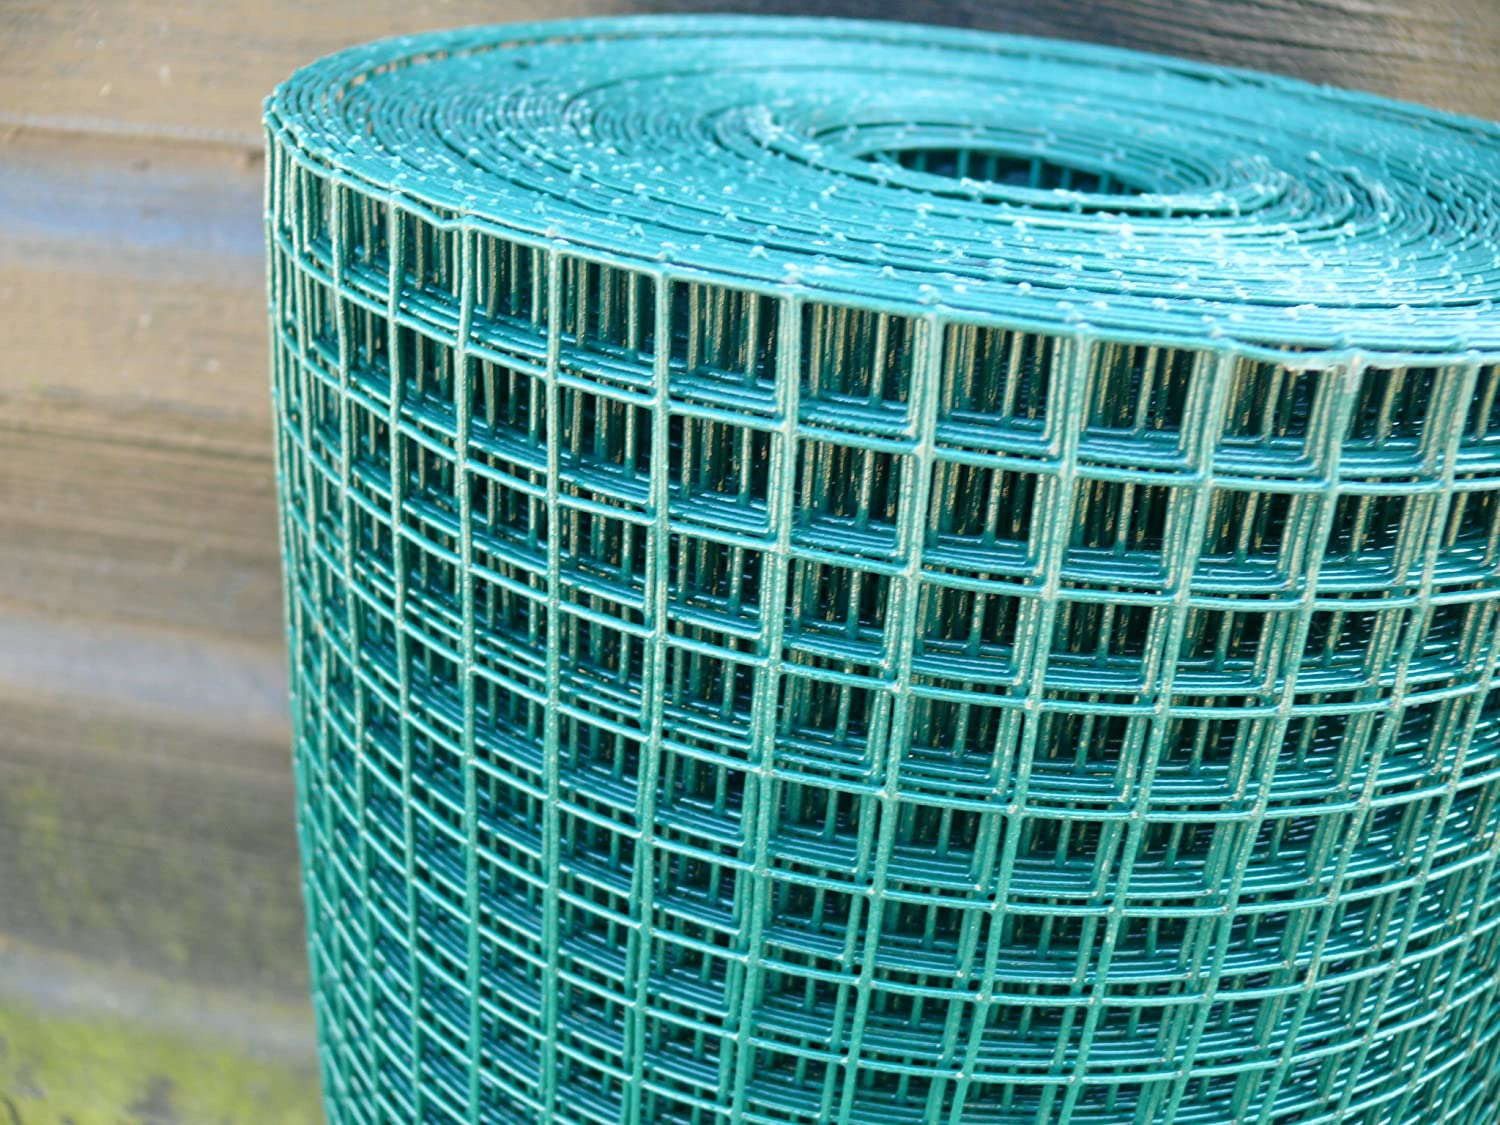 0.6mx25m Welded Steel Wire(13mm square mesh),Green Plastic Coated ...